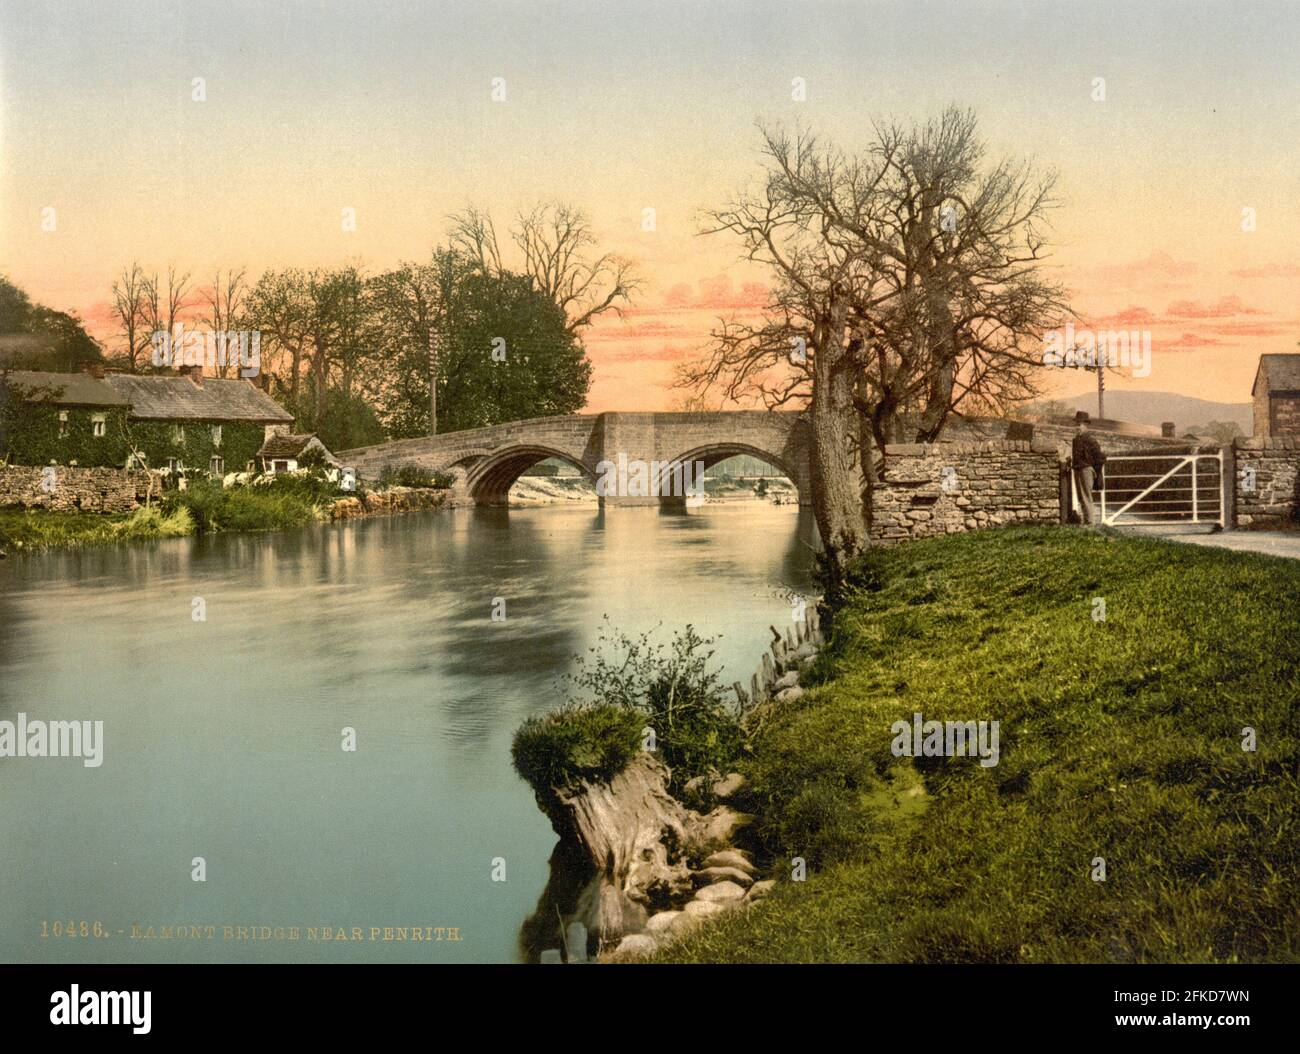 Eamont Bridge and the River Eamont in The Lake District, Cumbria circa 1890-1900 Stock Photo